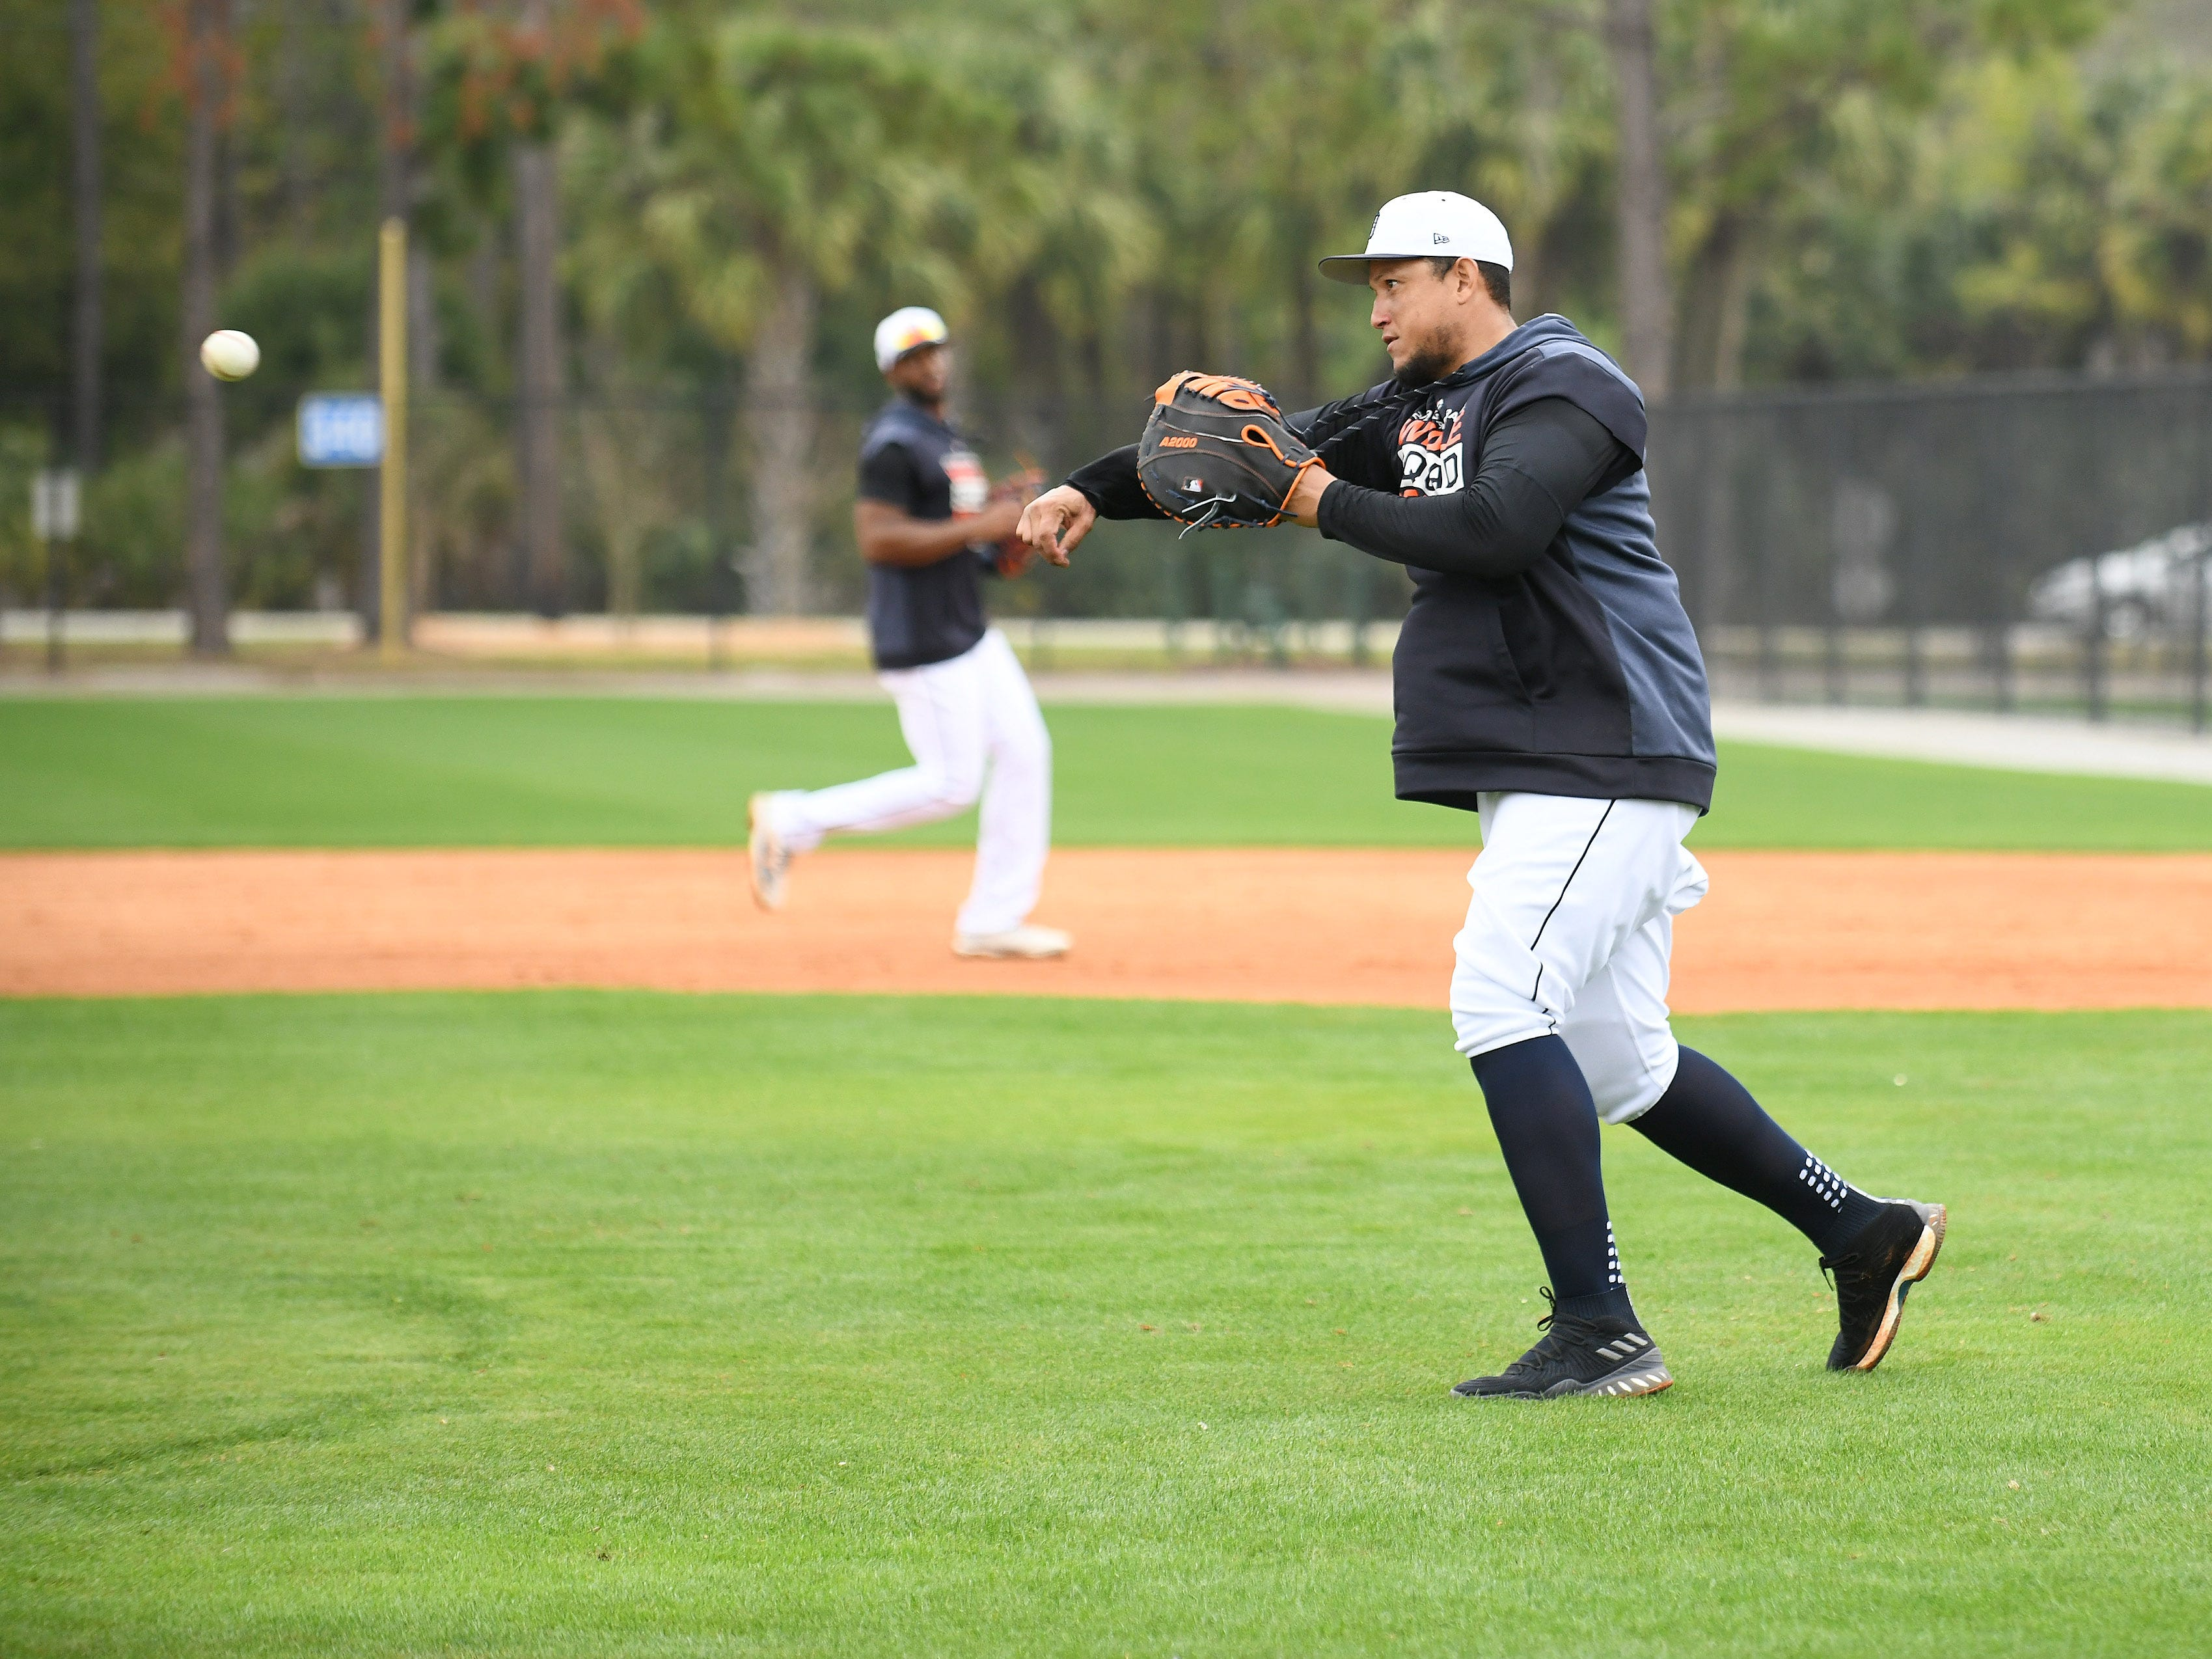 Tigers first baseman Miguel Cabrera throws to third base during infield drills.